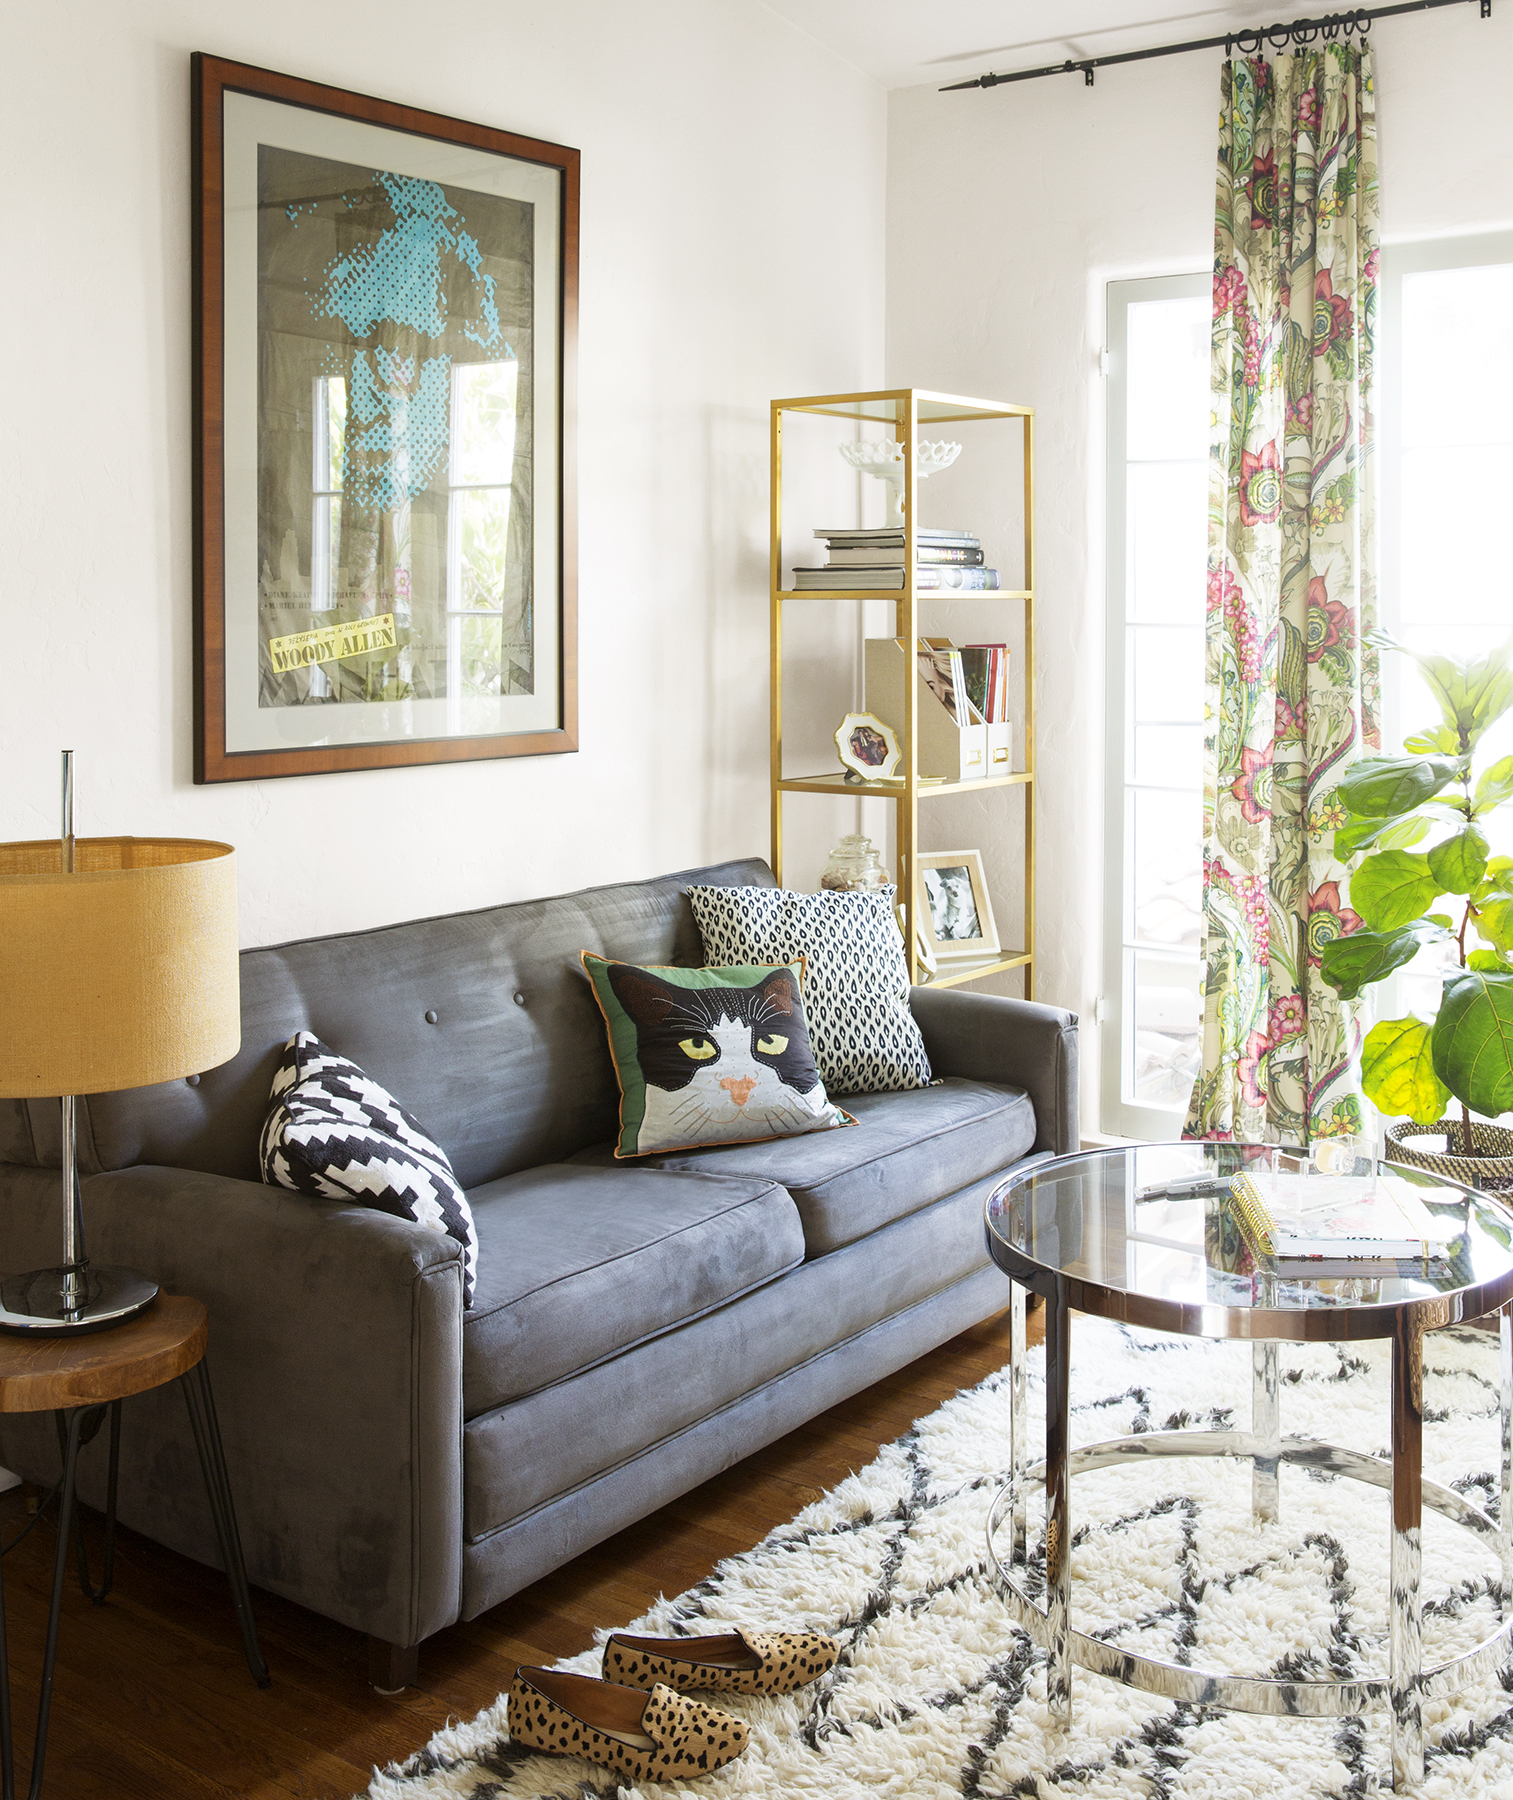 Family room with gray sofa and area rug